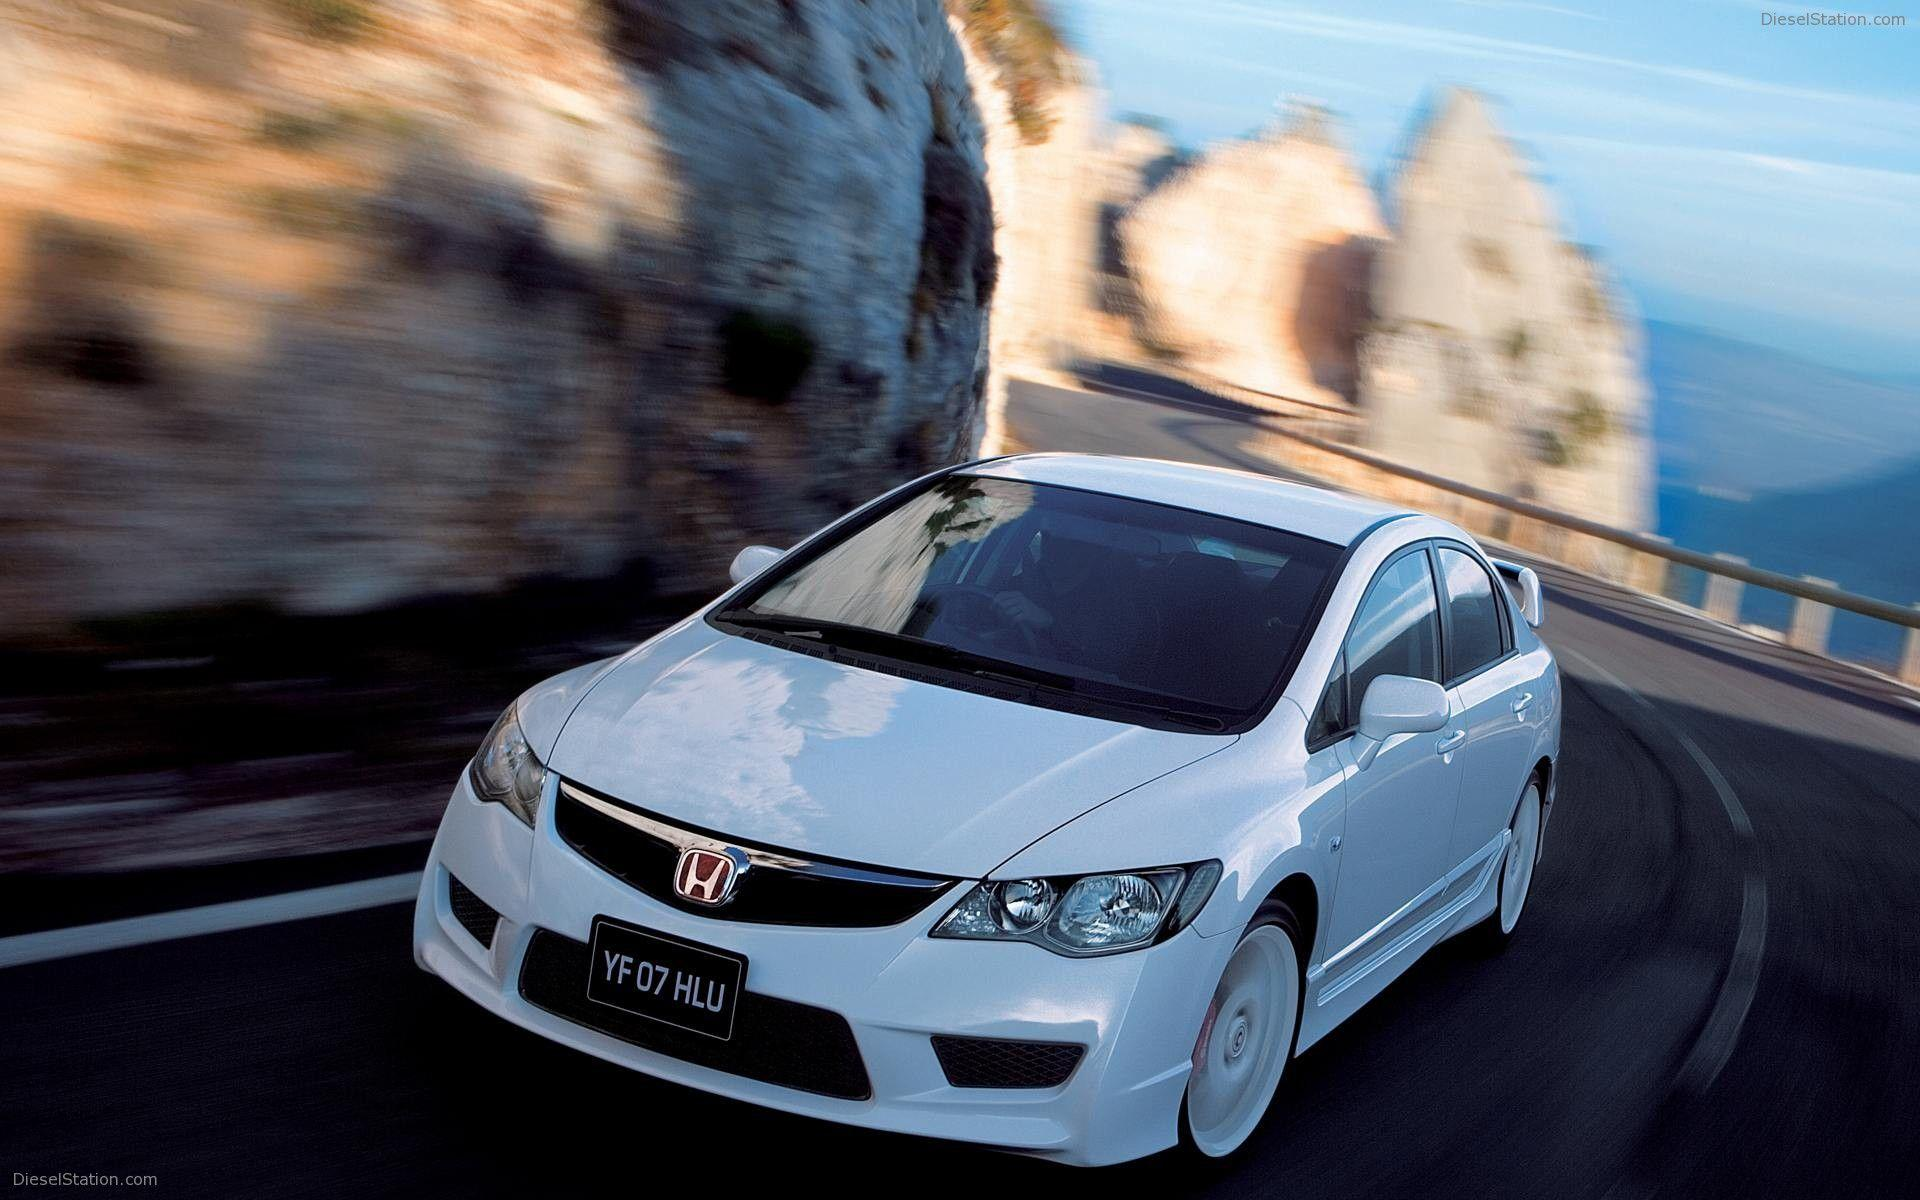 Honda Civic Type R Wallpapers Widescreen Exotic Car Wallpaper #21 .